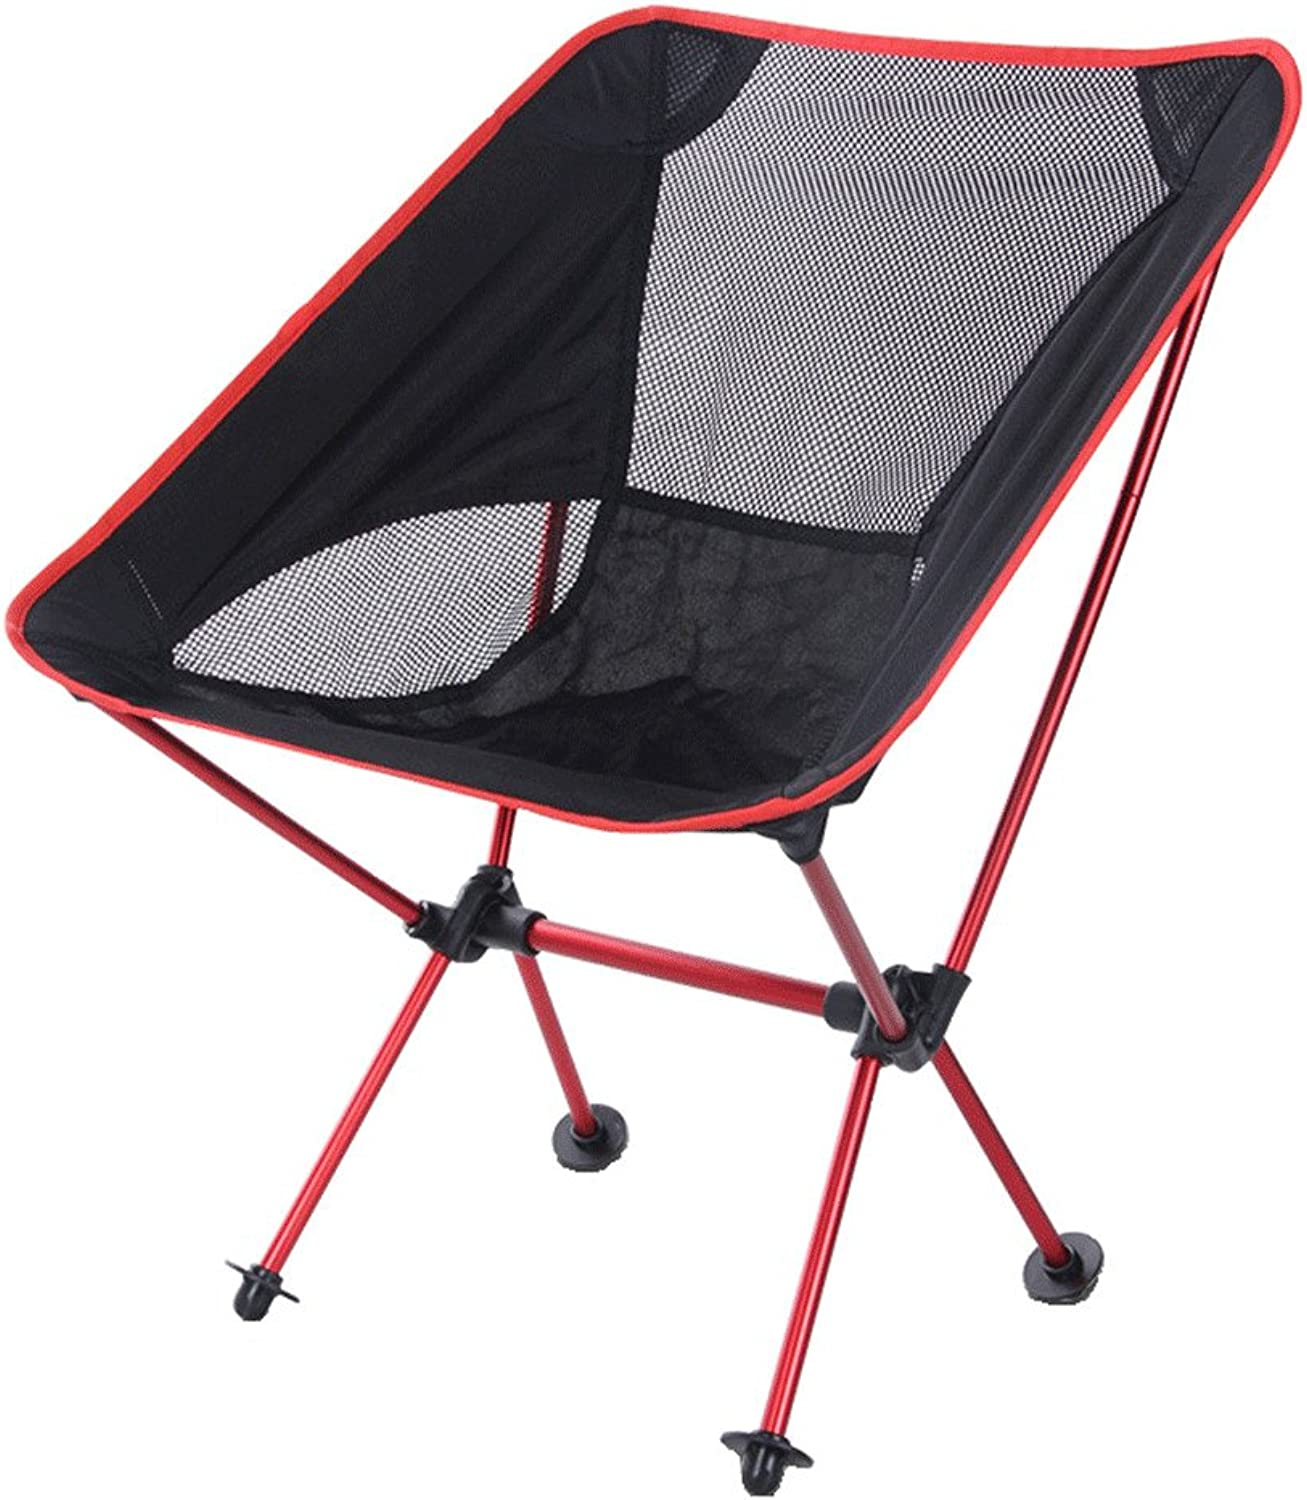 Camping Chair Lightweight Folding Chair Carry Bag Capacity Lightweight Folding Chair Portable Compact Backpacking,Hiking,Fishing,Picnic